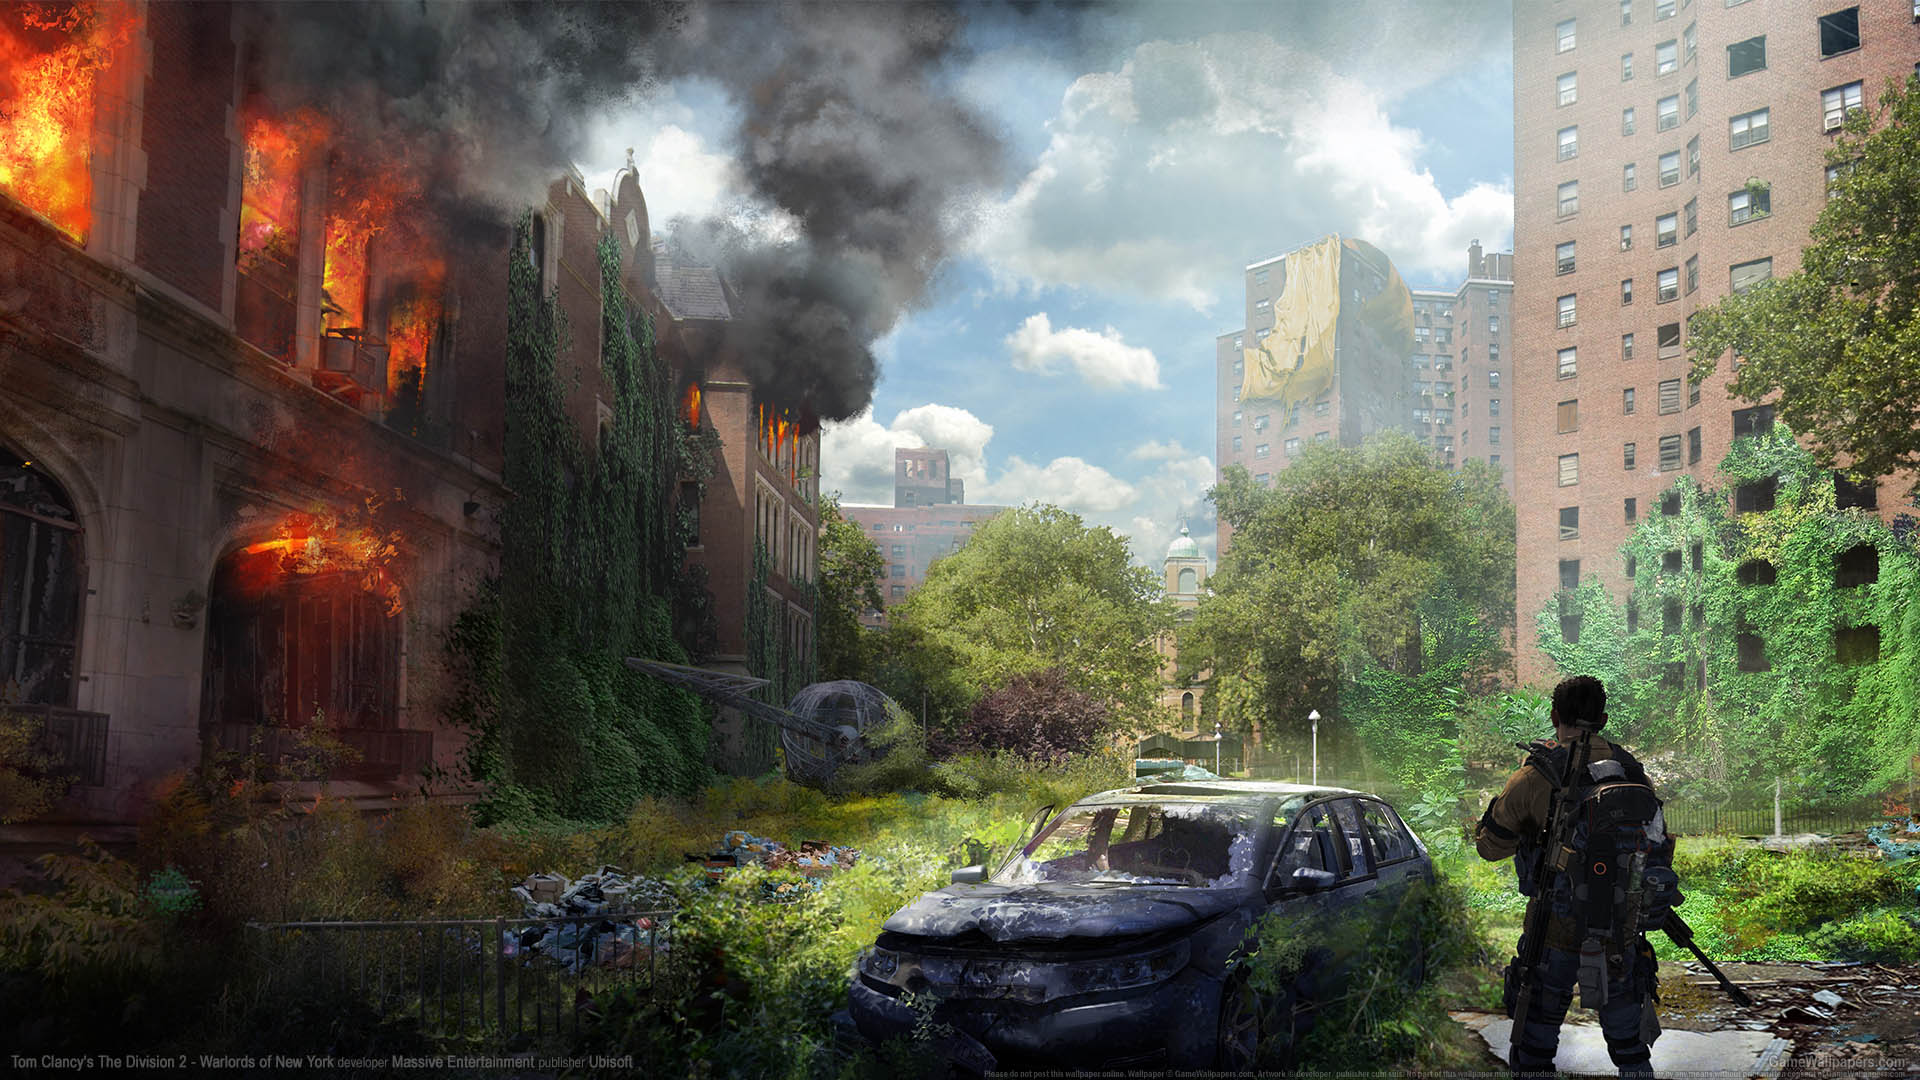 Tom Clancy's The Division 2 - Warlords of New York wallpaper 03 1920x1080